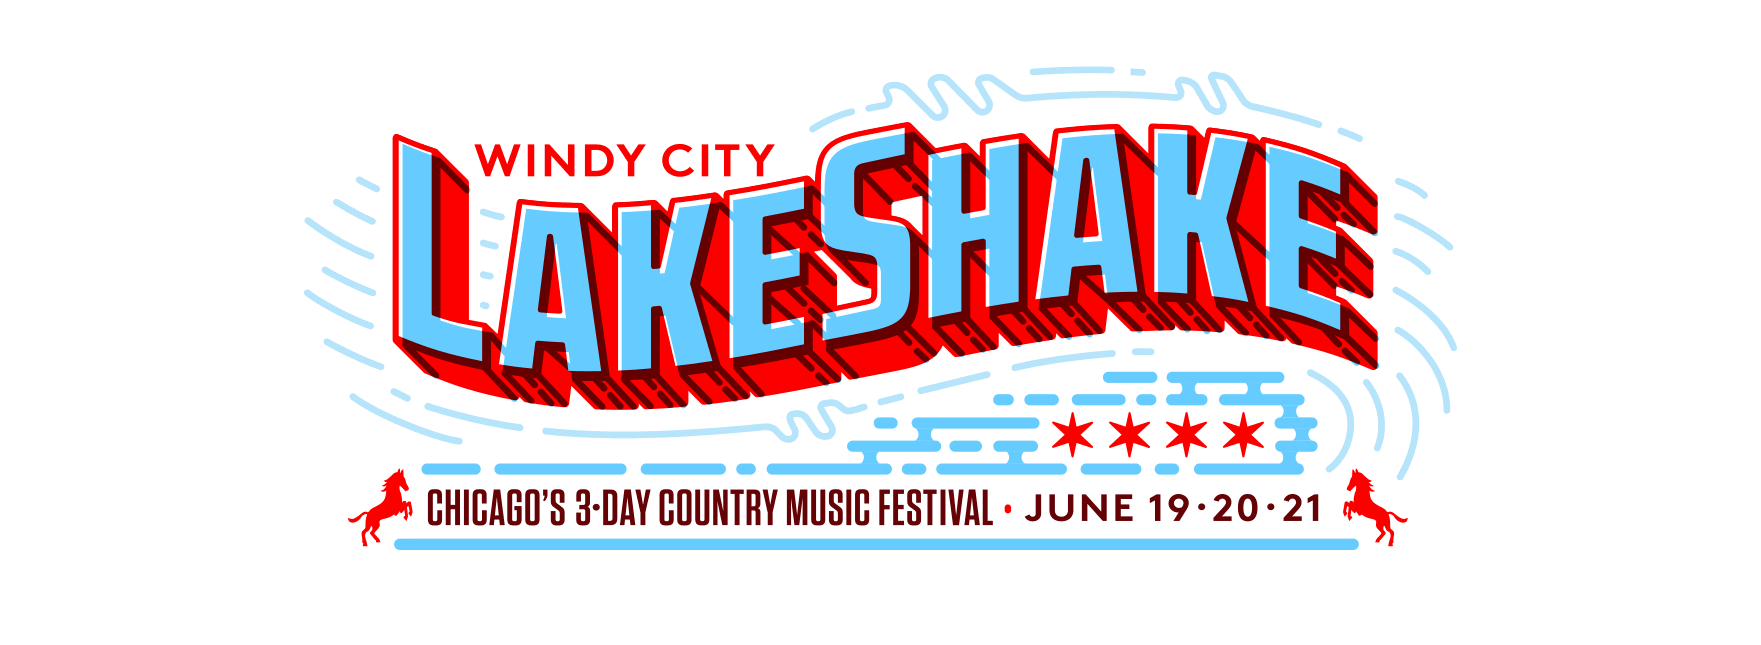 Country LakeShake 2015